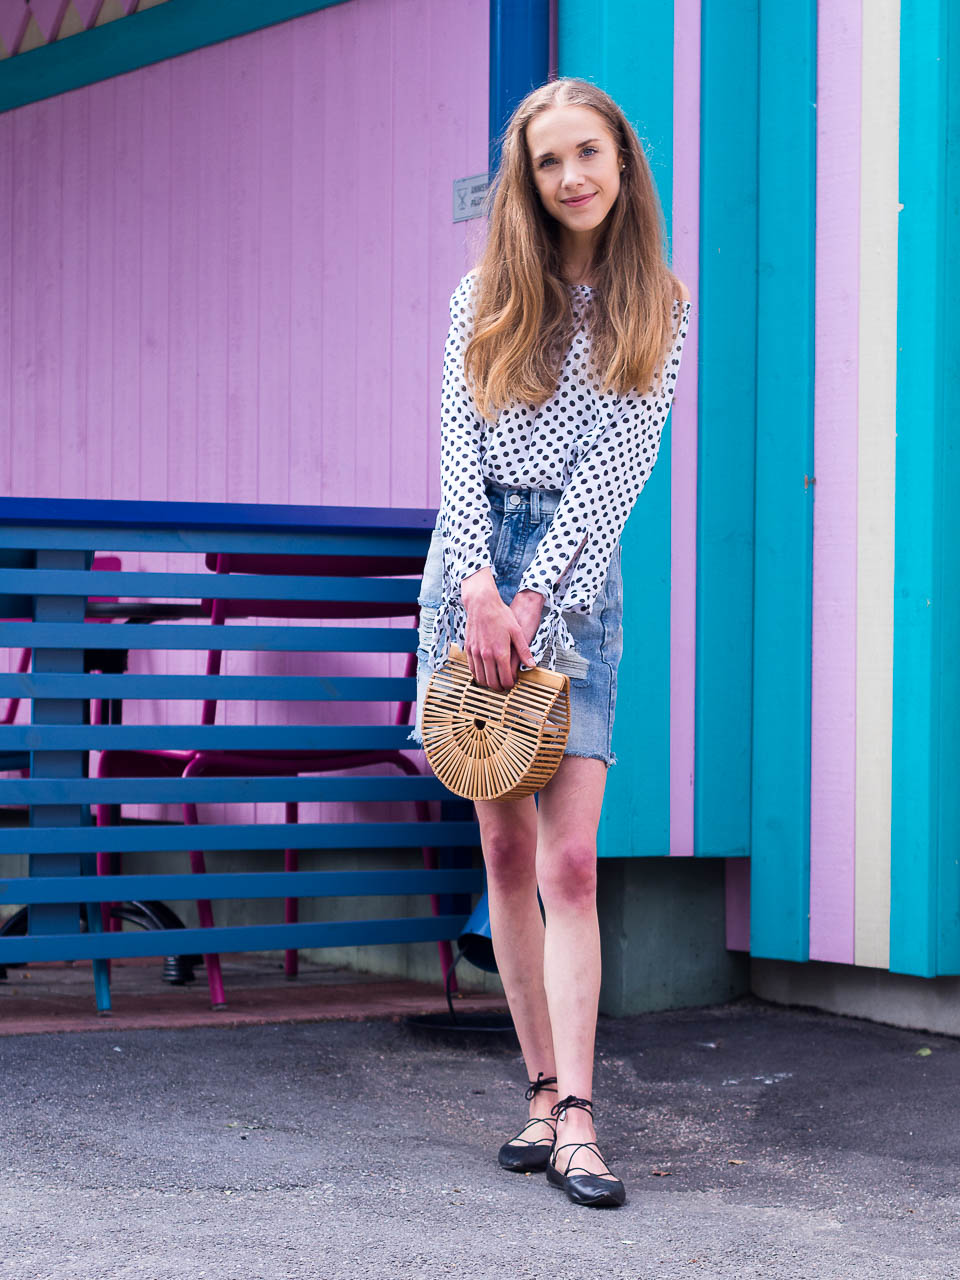 polka-dot-top-outift-inspiration-fashion-blogger-cult-gaia